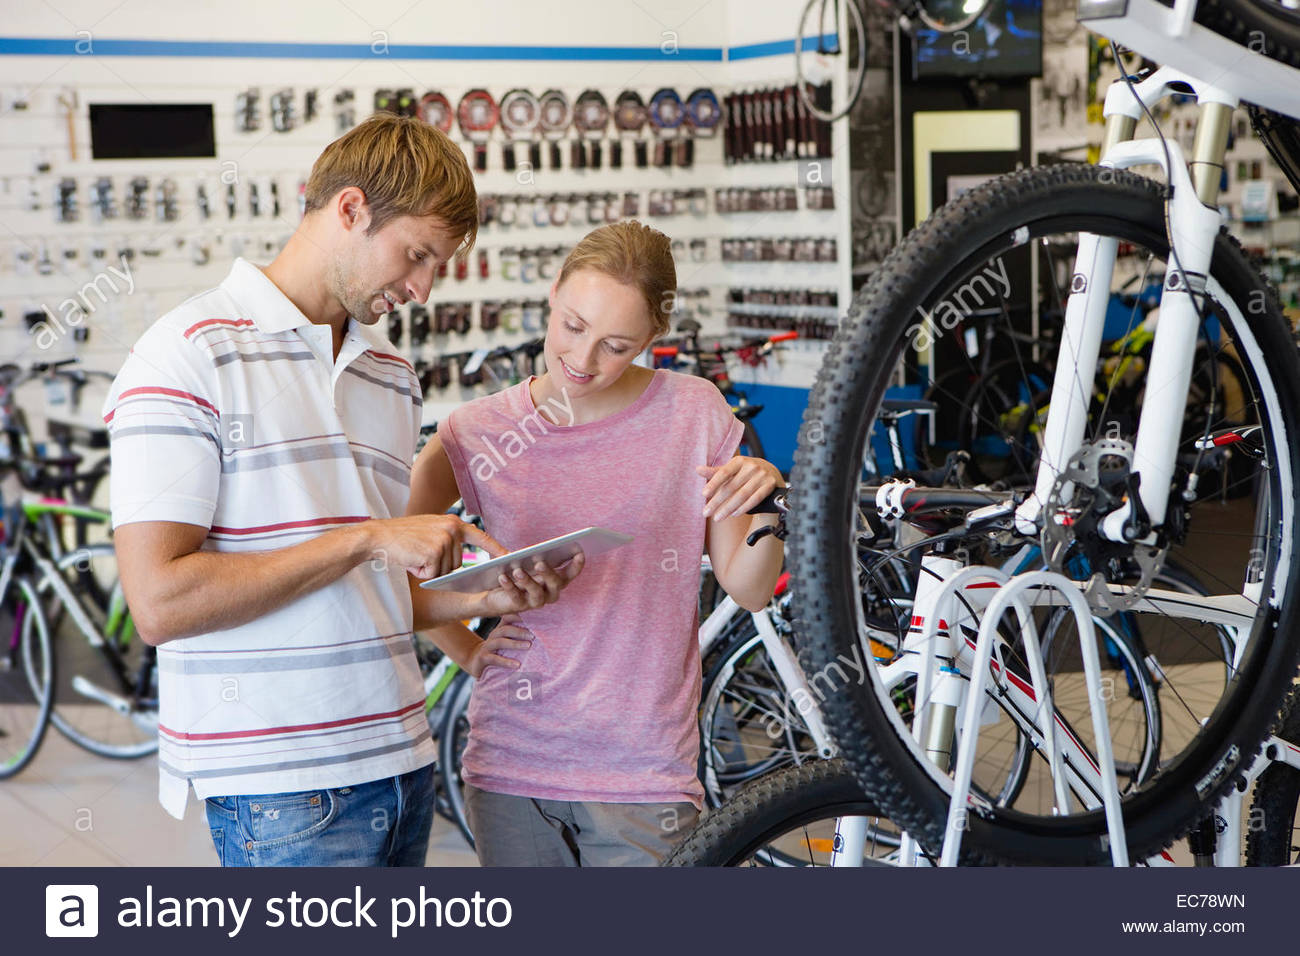 Store manager assisting customer in bicycle shop - Stock Image